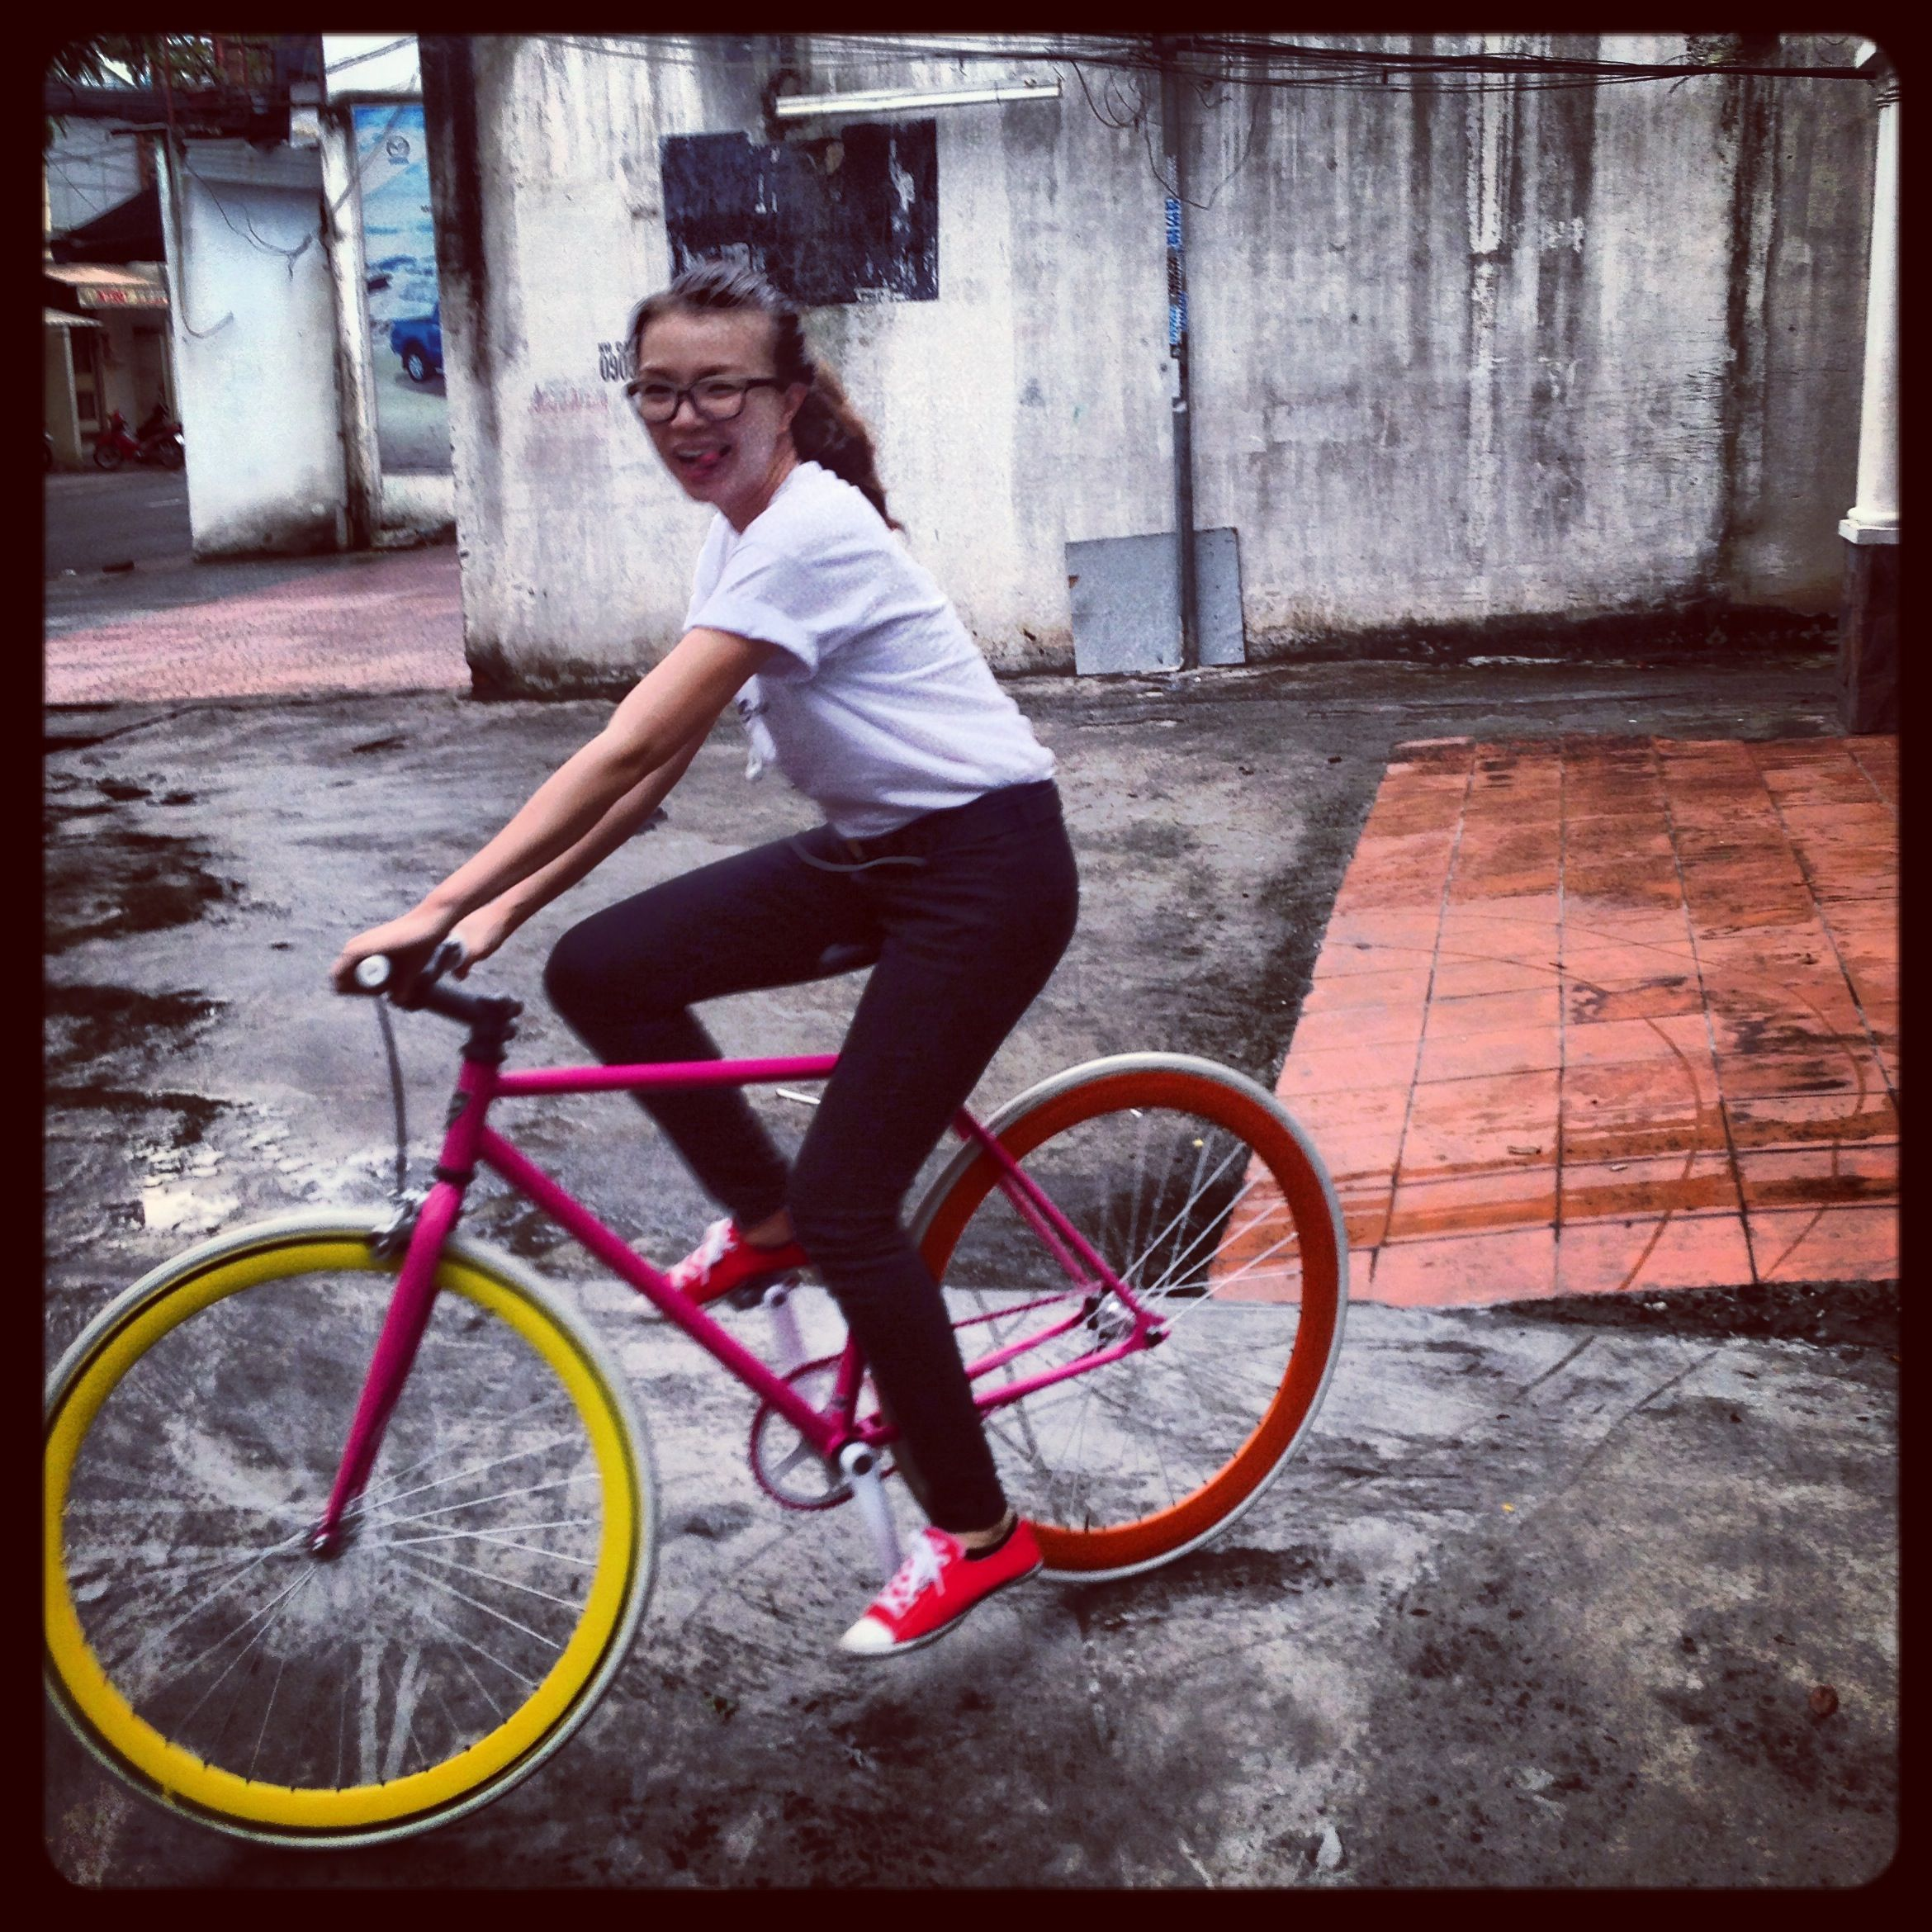 Colorful fixed gear bicycle - go green !!